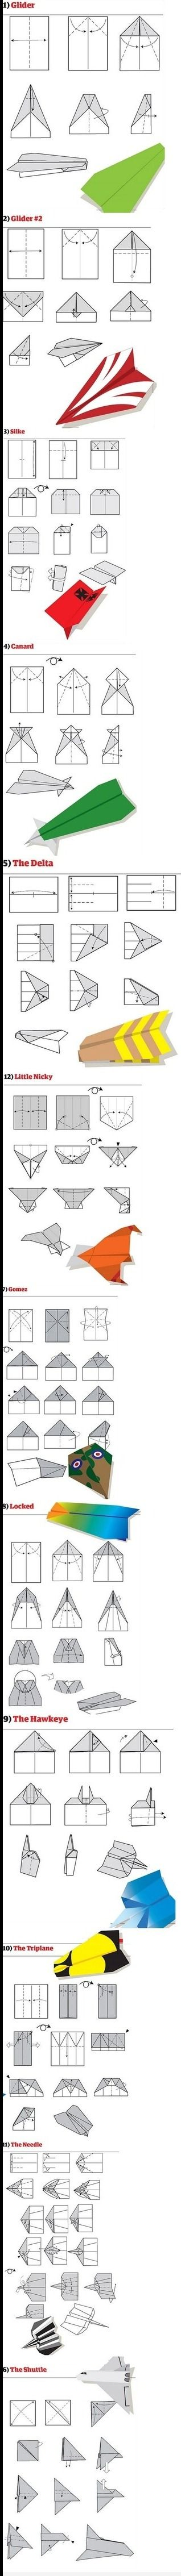 Paper Airplane folds